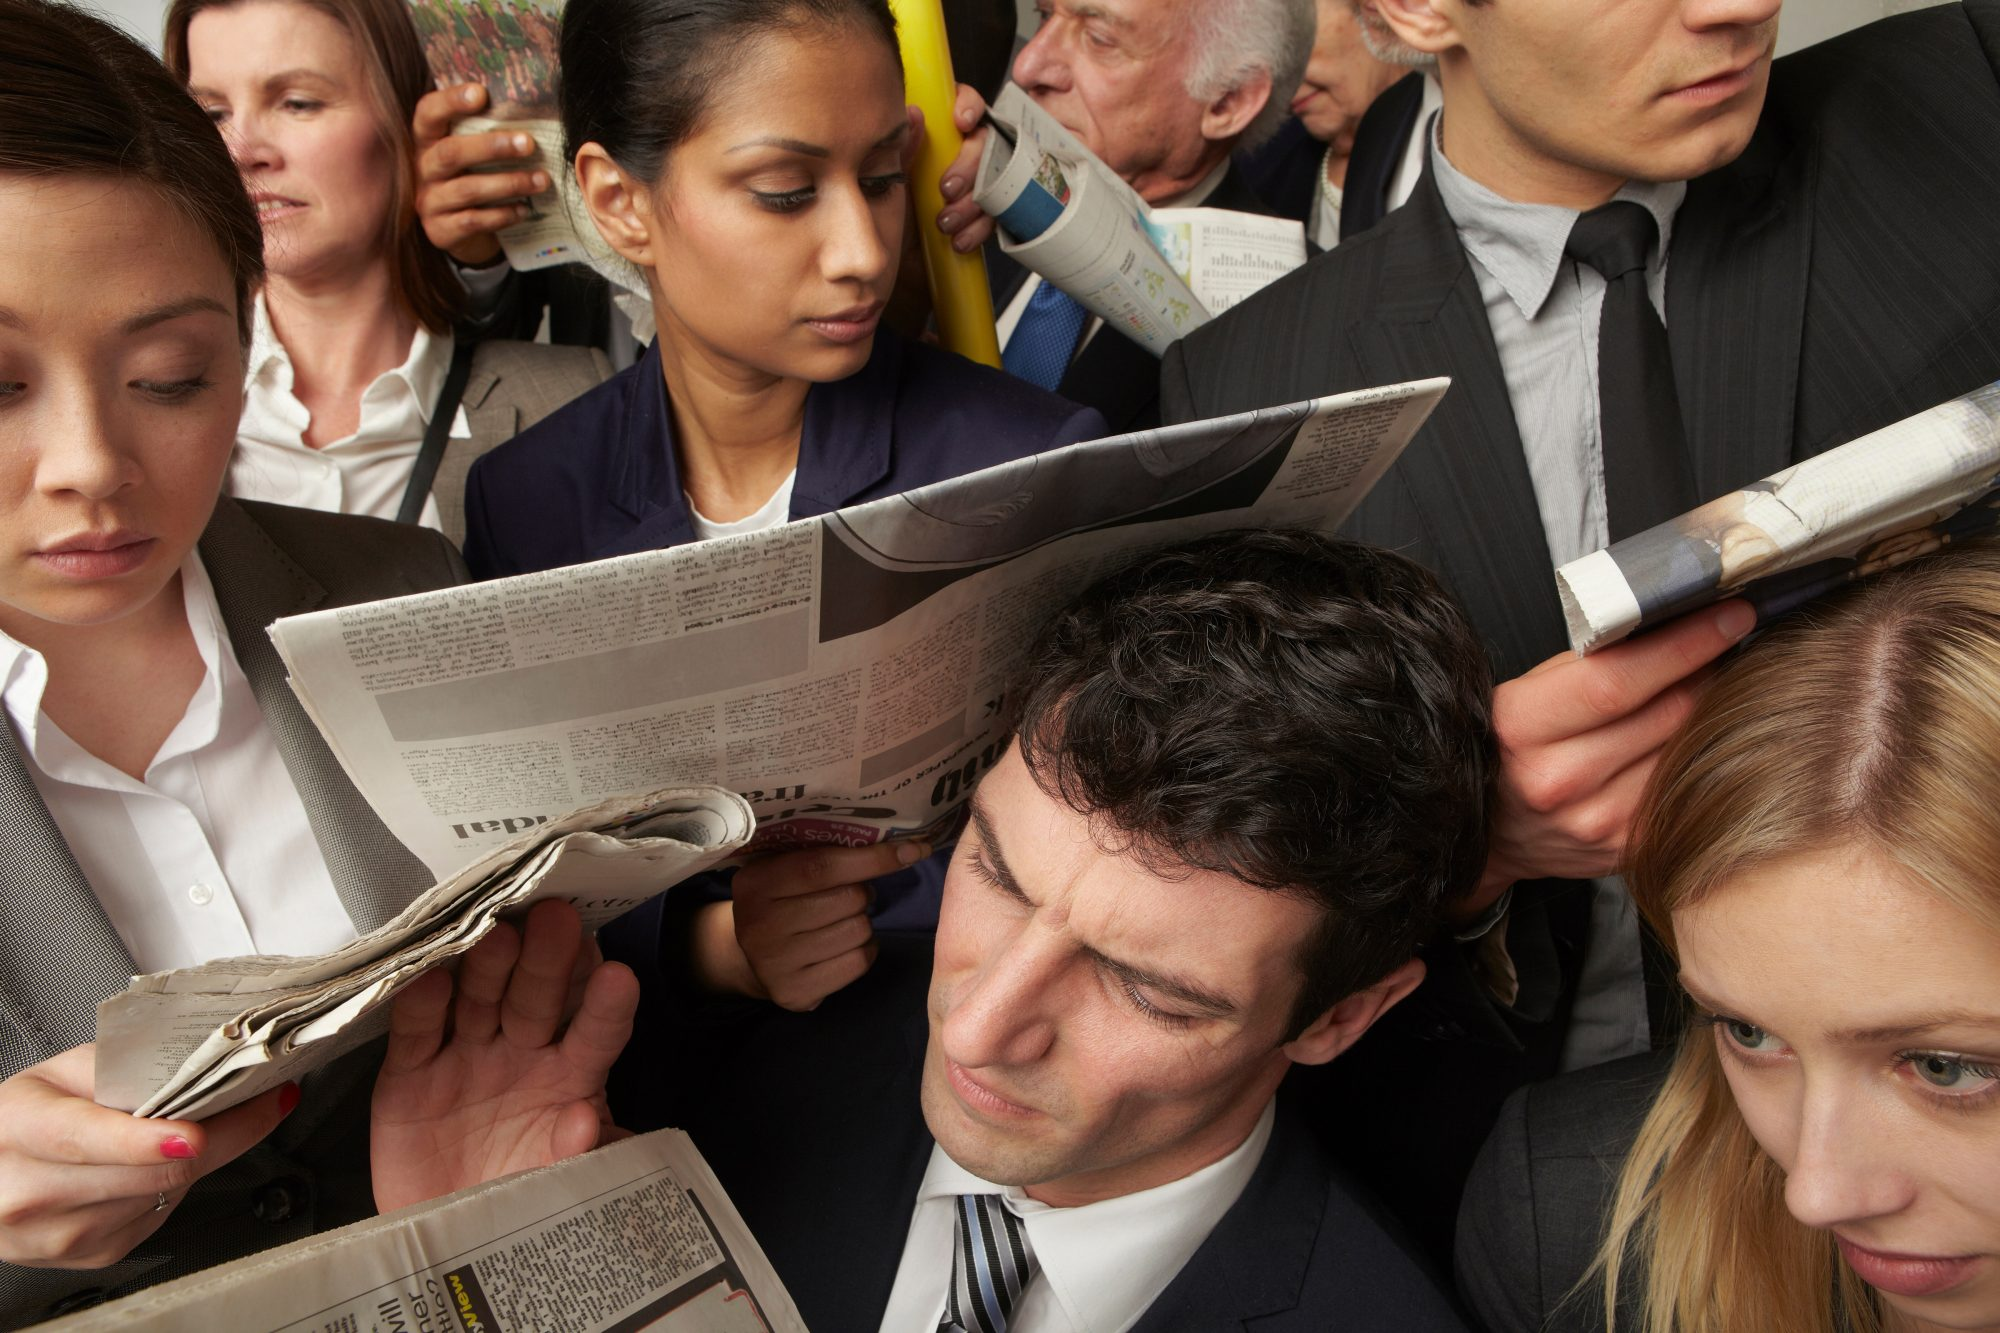 People Crowded on Train